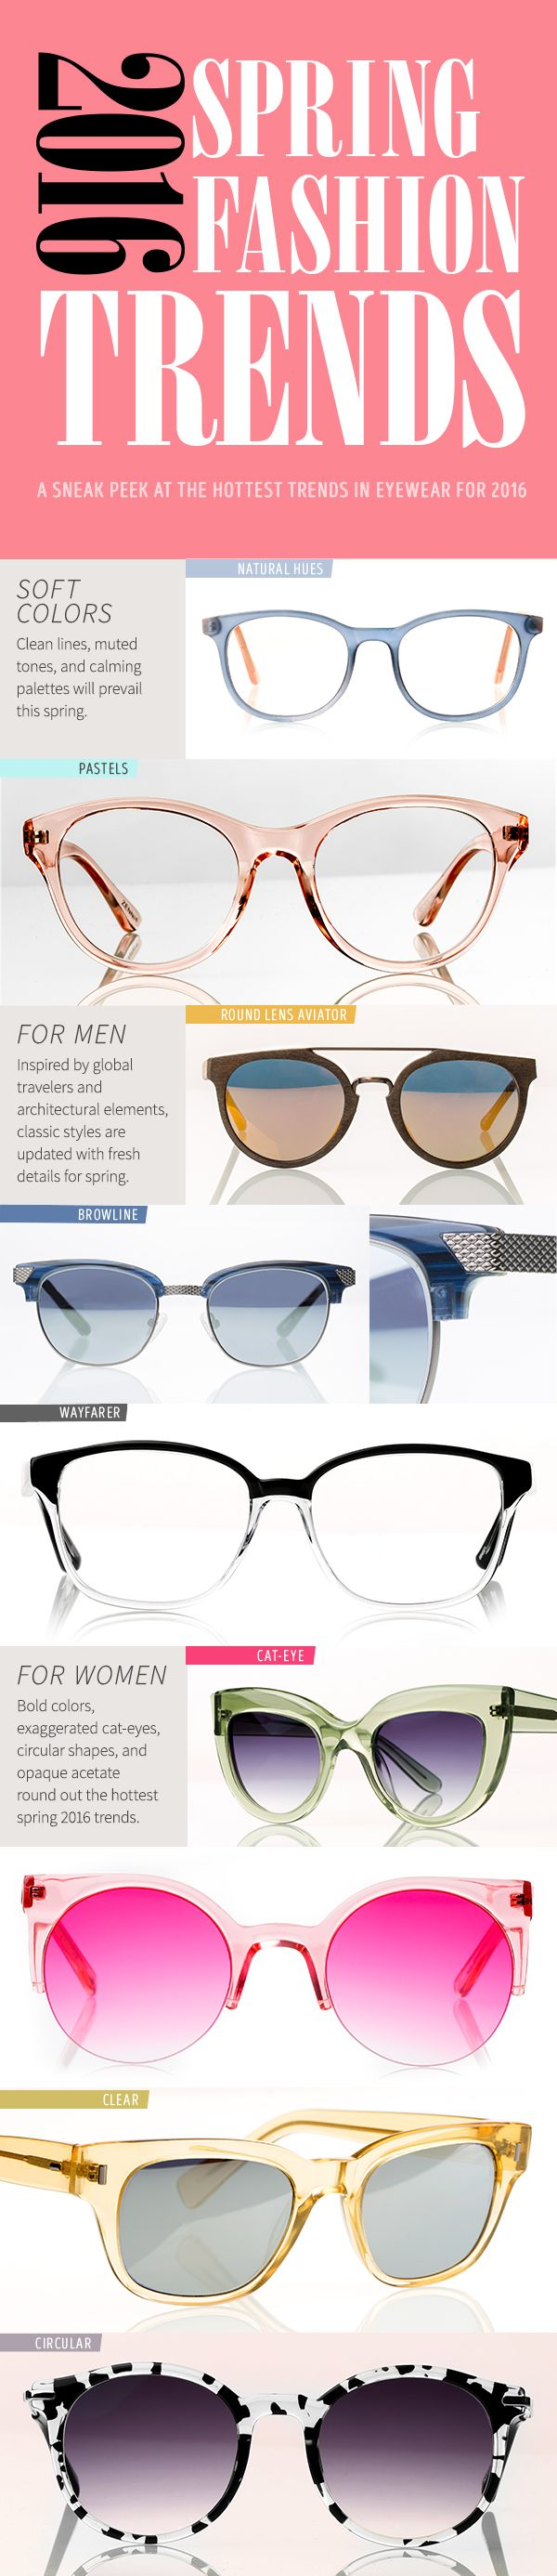 eb9a567f6c It's Fashion Week and Zenni Optical is giving you an exclusive sneak peek  at the hottest eyewear trends for 2016. What's your favorite style? | Gafas  ...